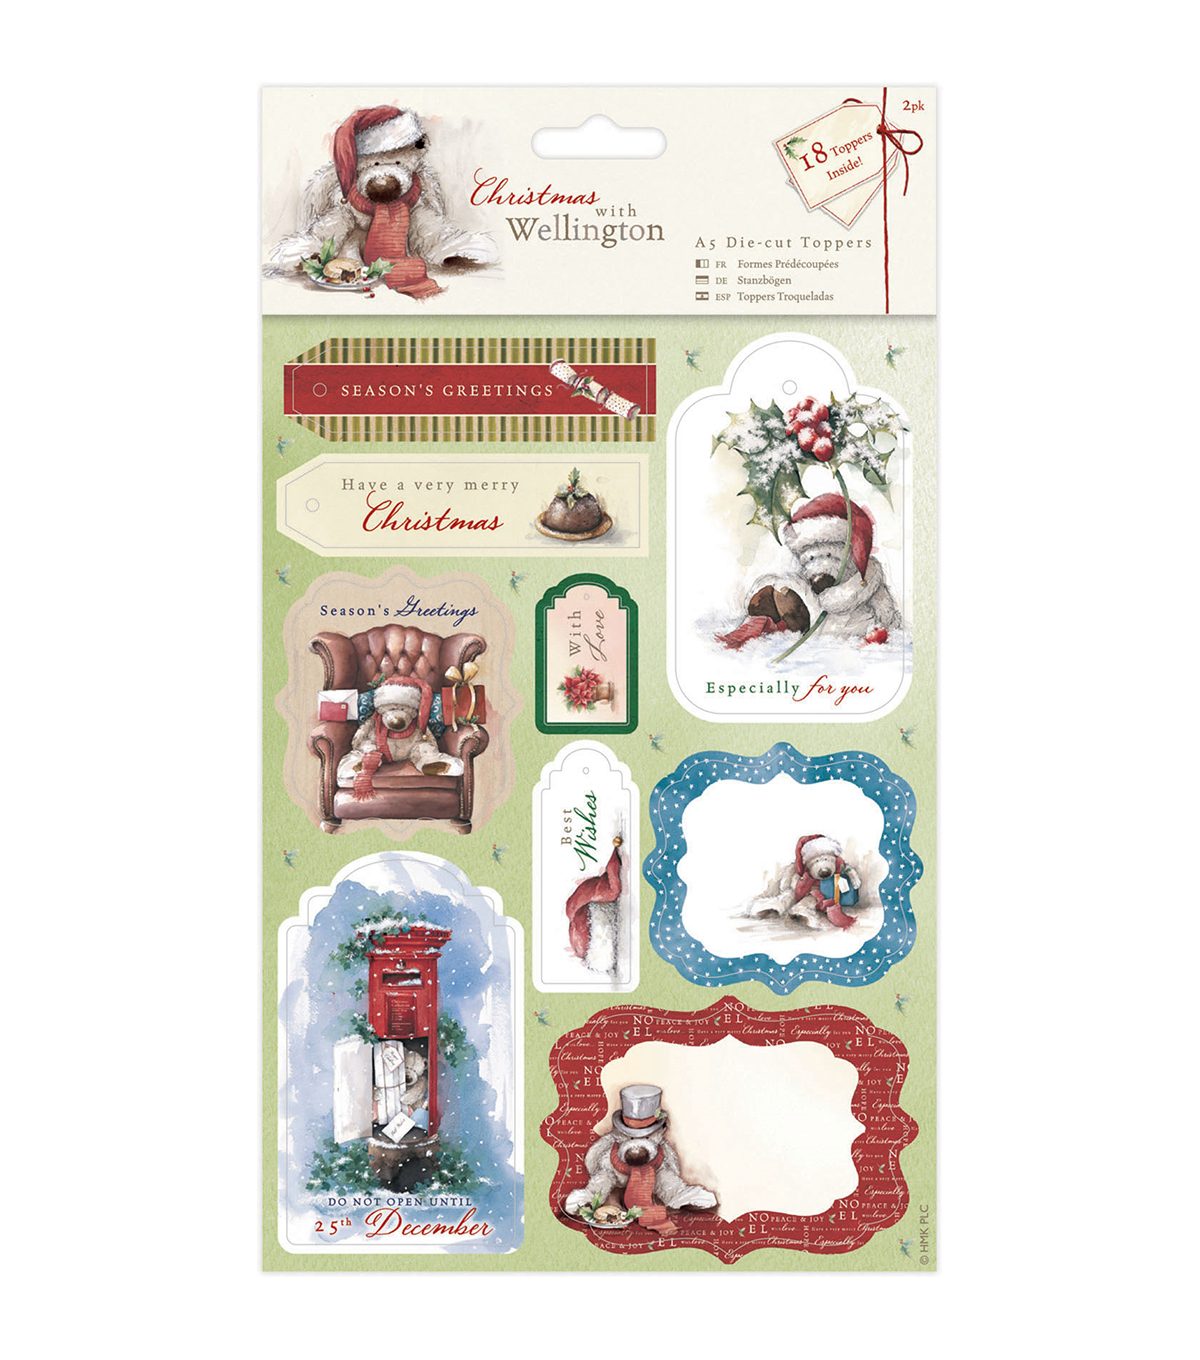 Docrafts Christmas With Wellington A5 Die-Cut Toppers